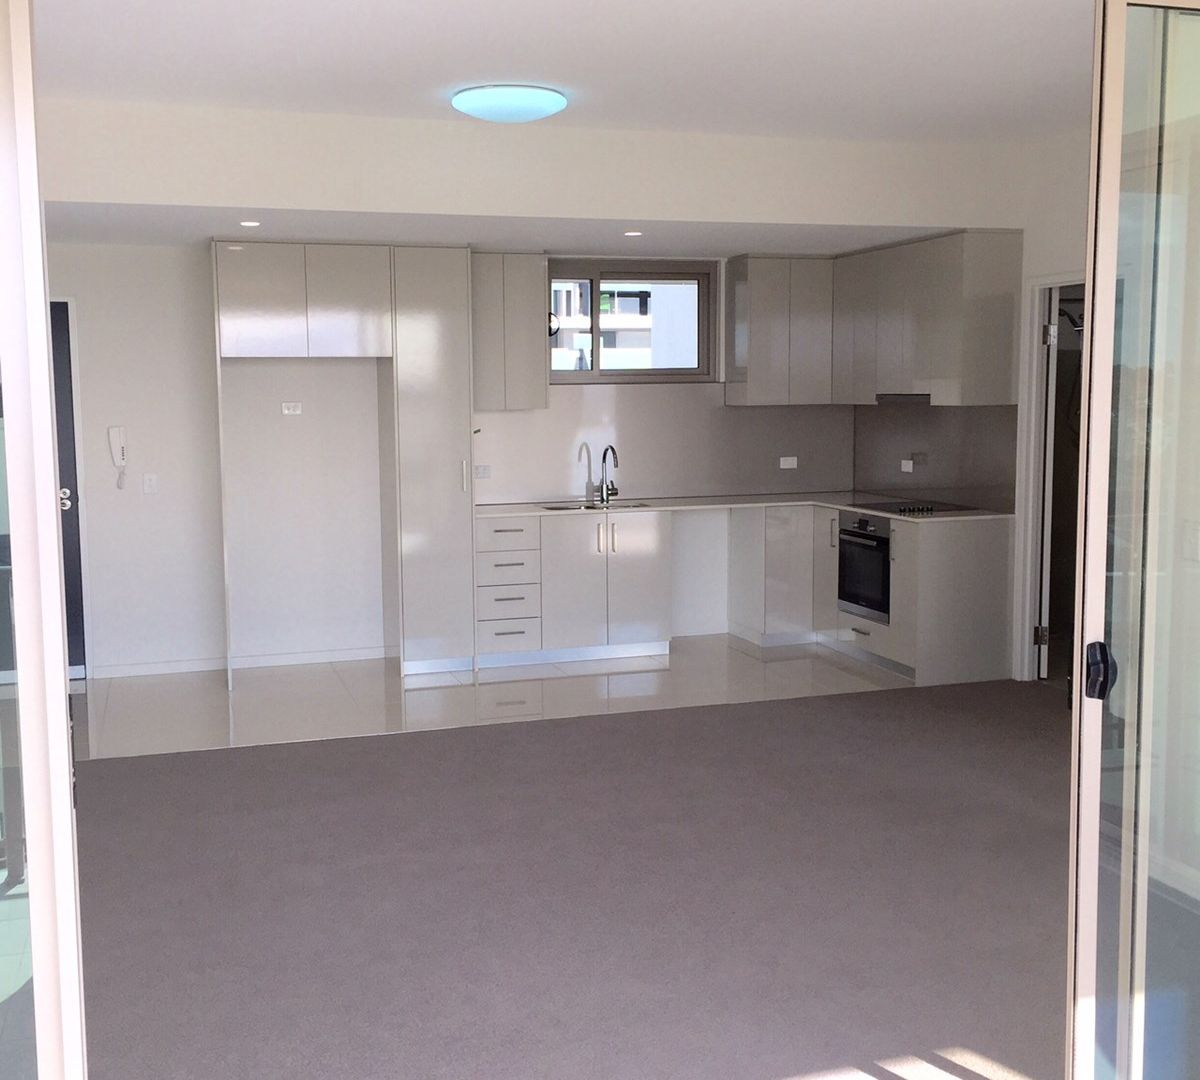 66/6 Campbell Street, West Perth WA 6005, Image 1